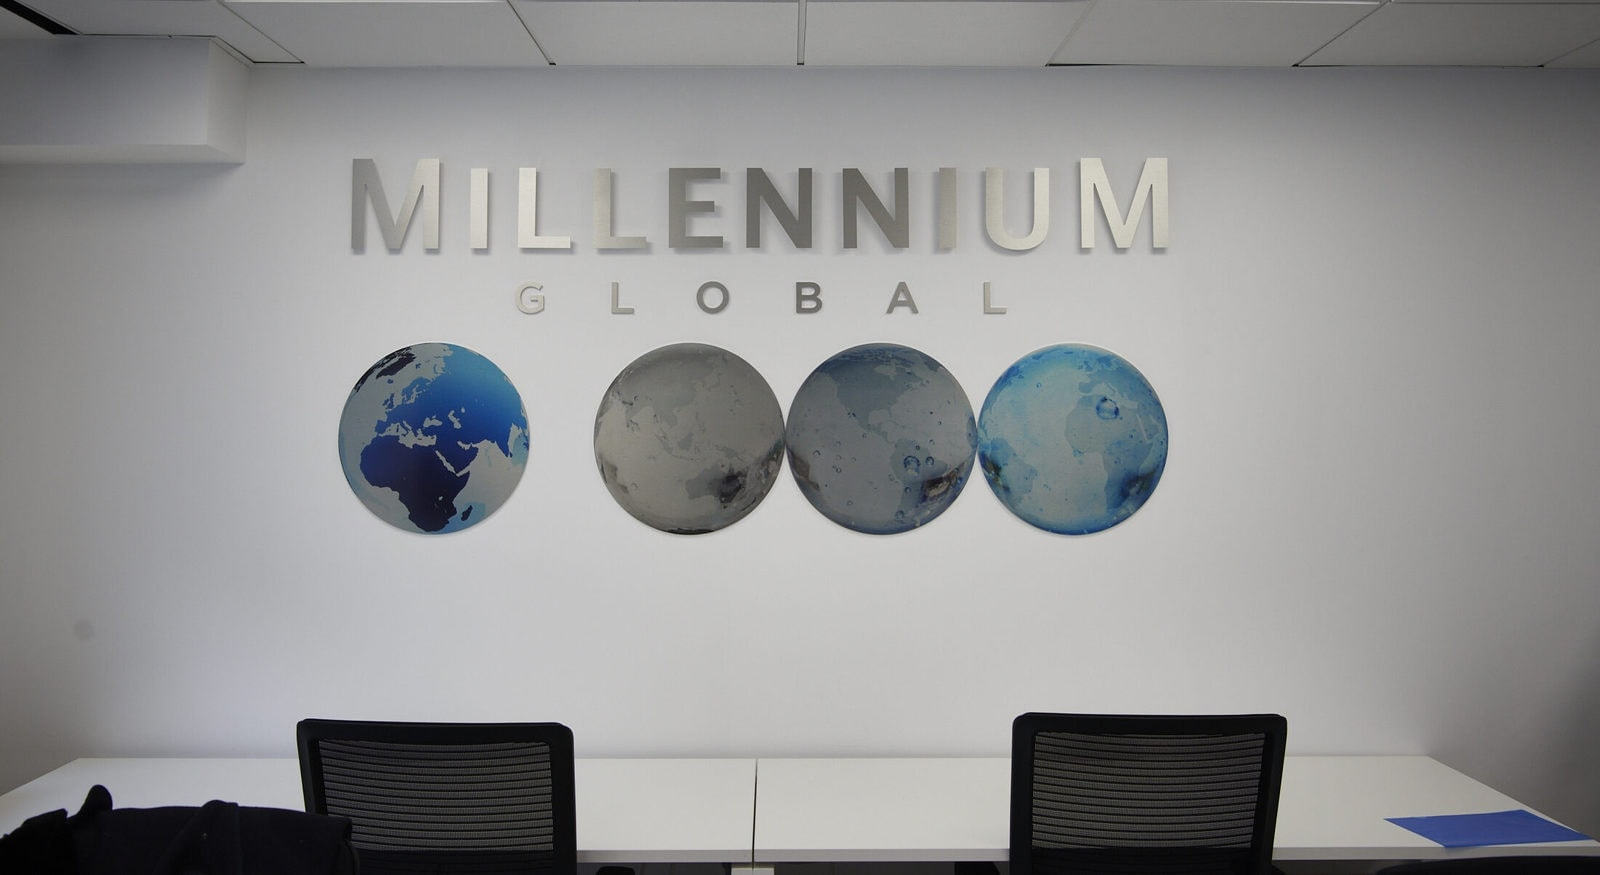 Millennium Global Europe